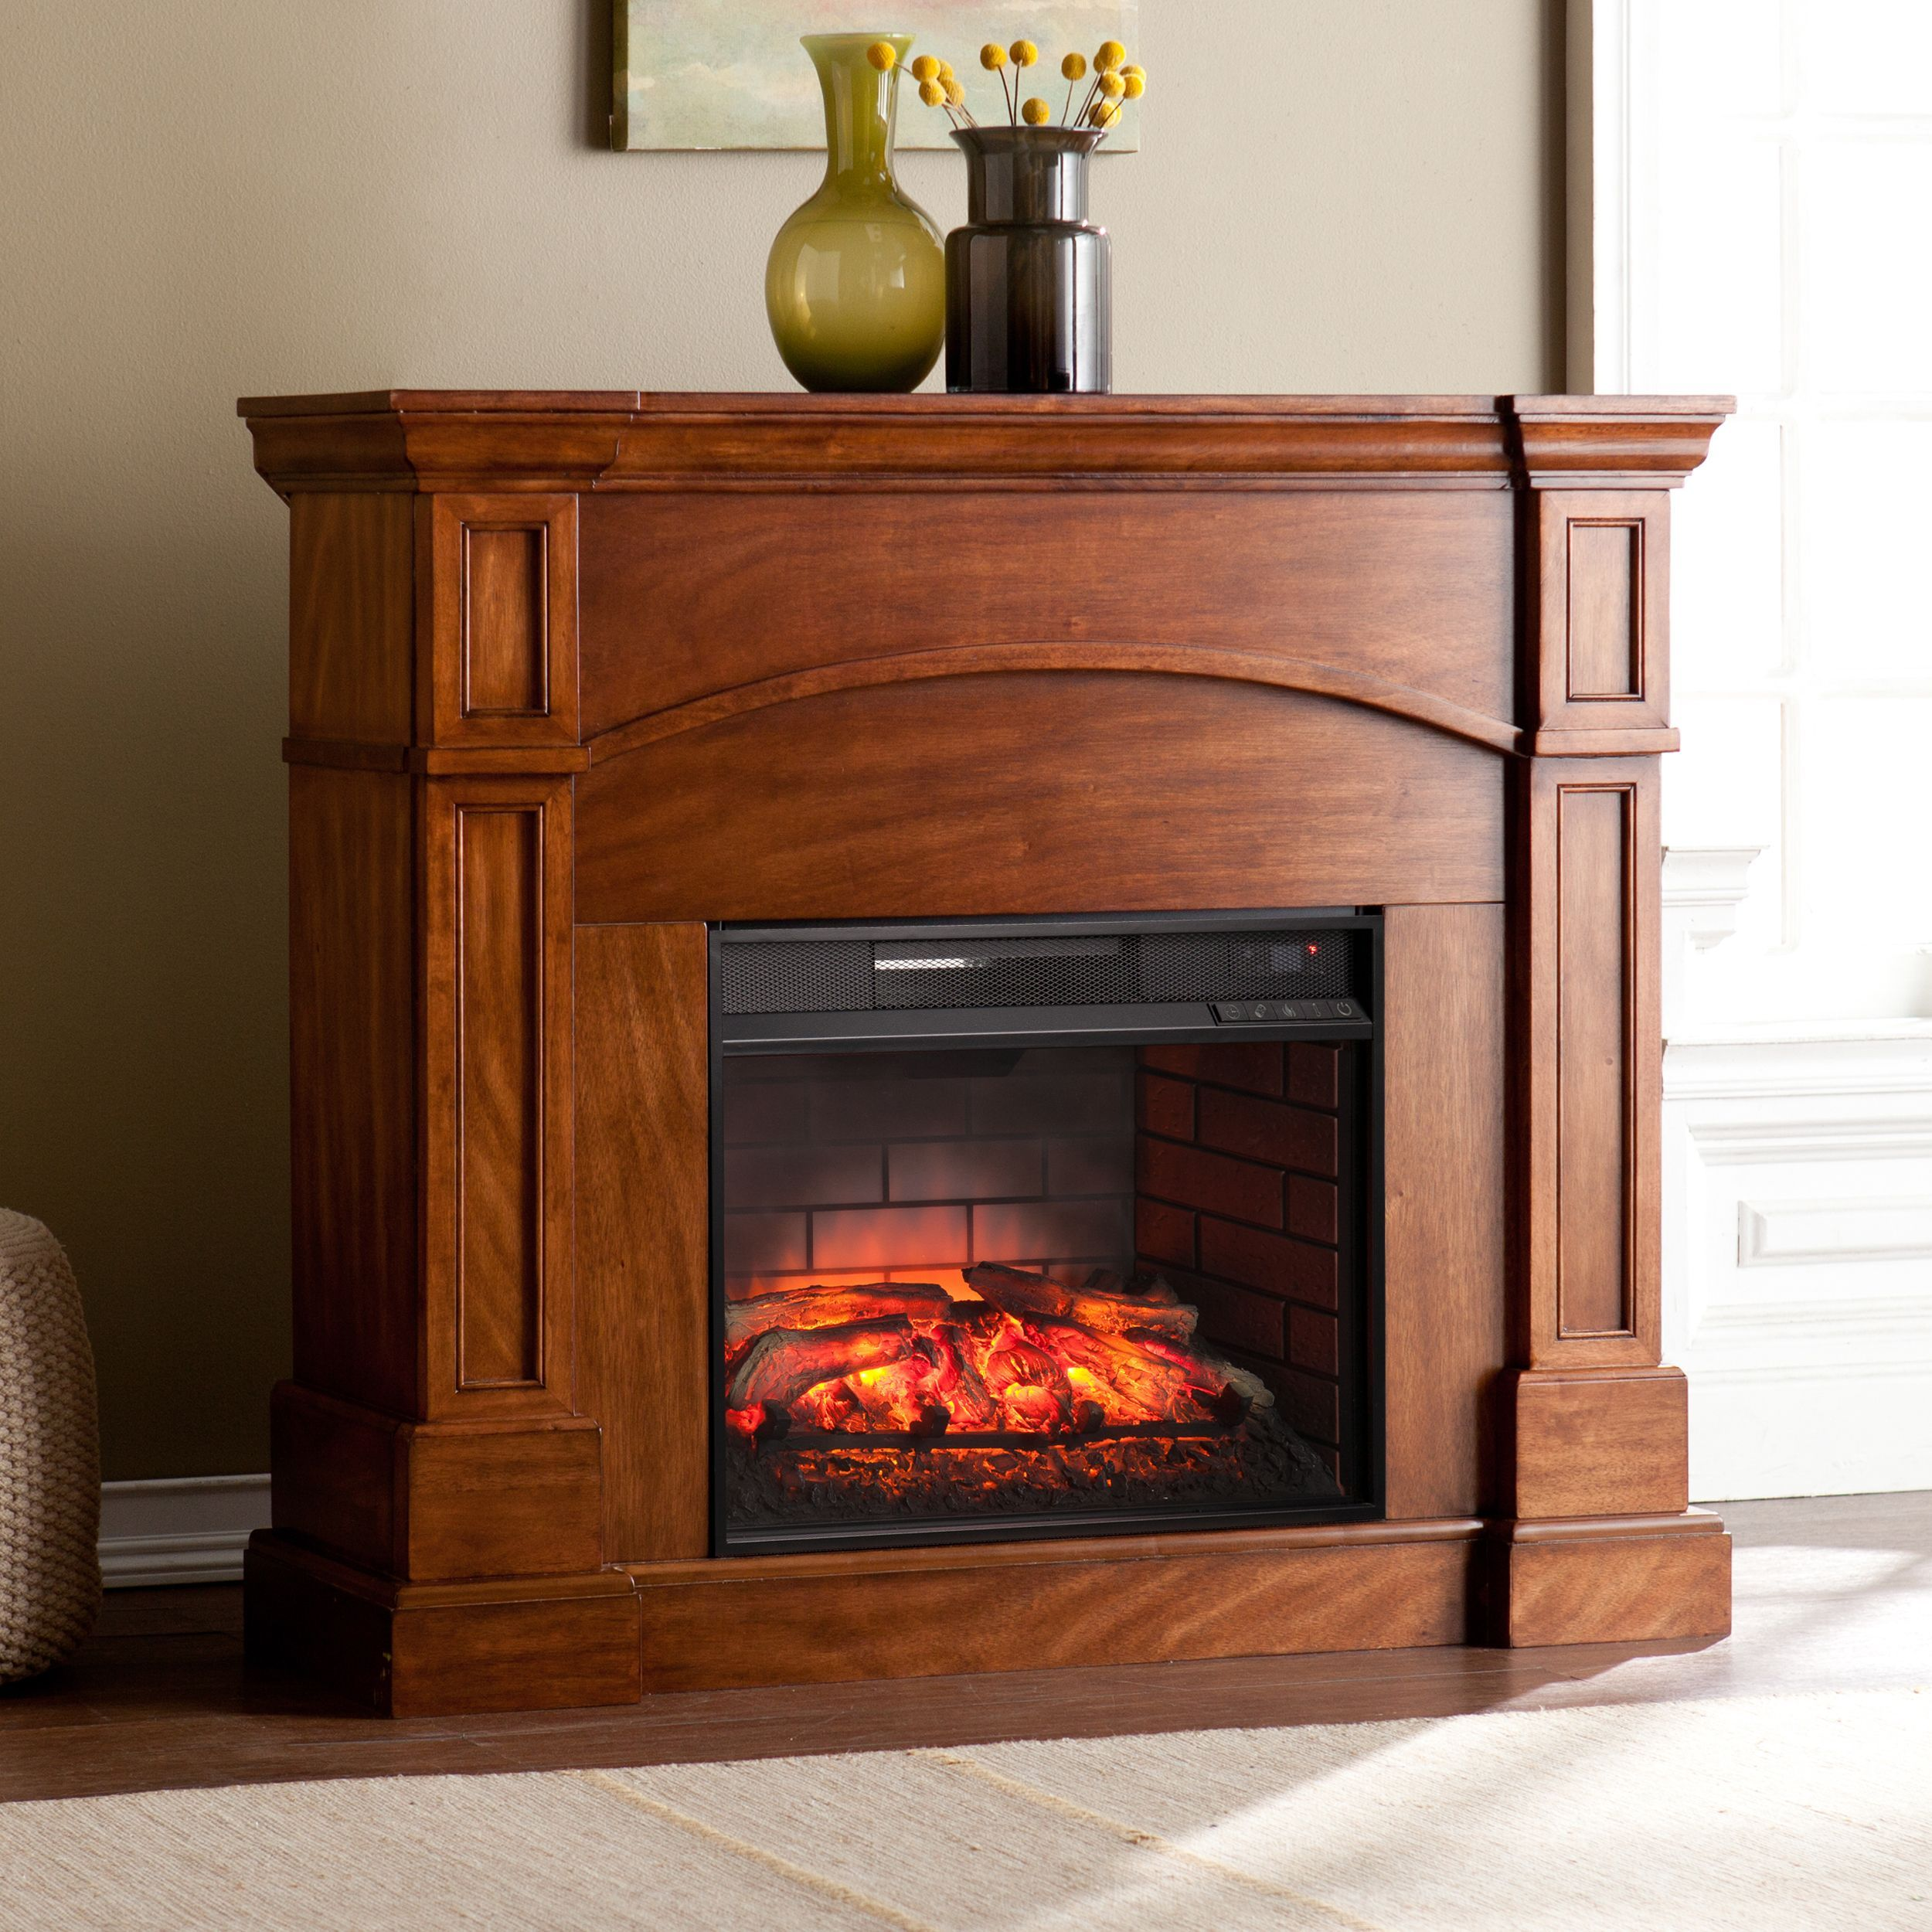 Fireplace amp tv stand in premium cherry finish with 23ef025gra electric -